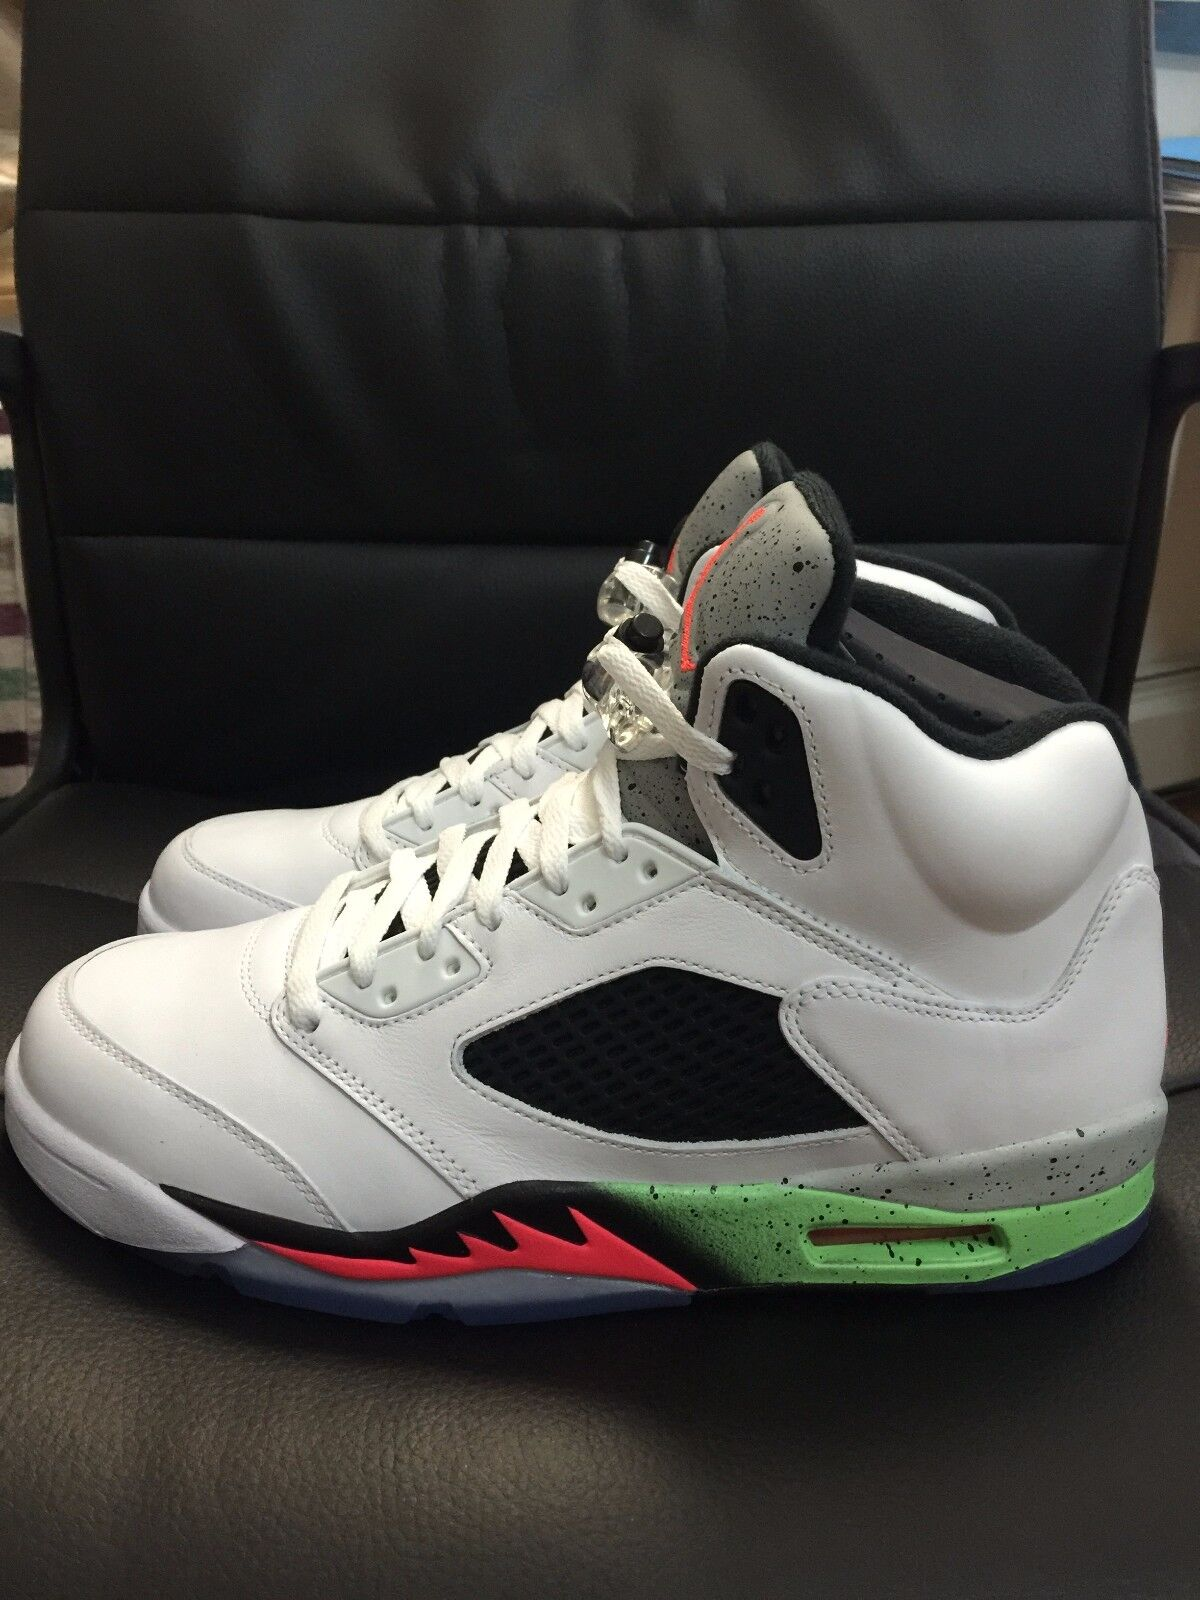 Air Jordan 5 Retro Poison Green size 10 Great discount